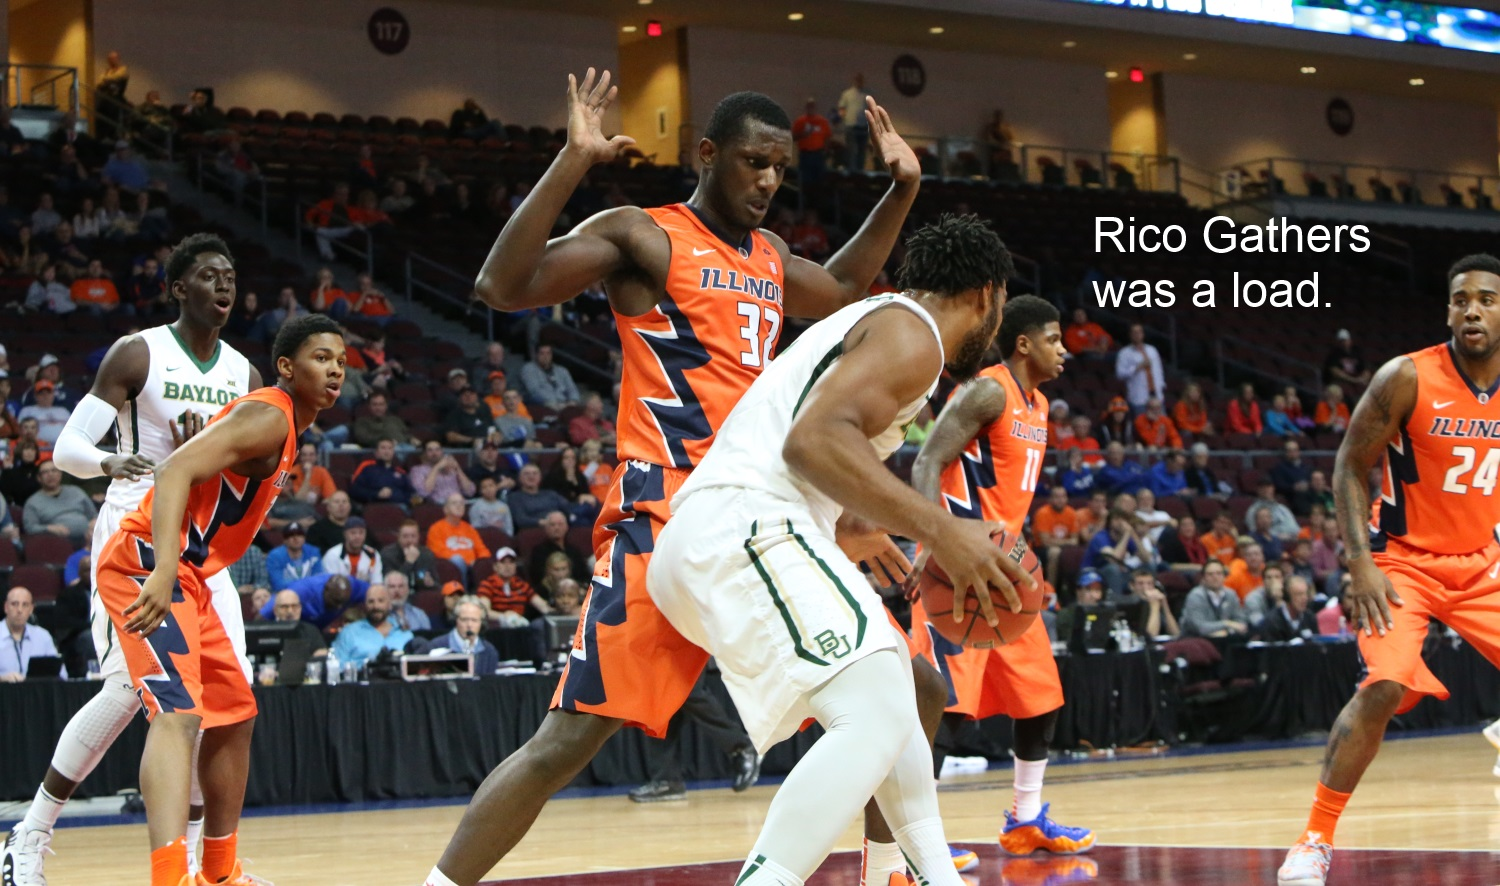 Rico Gathers was a load